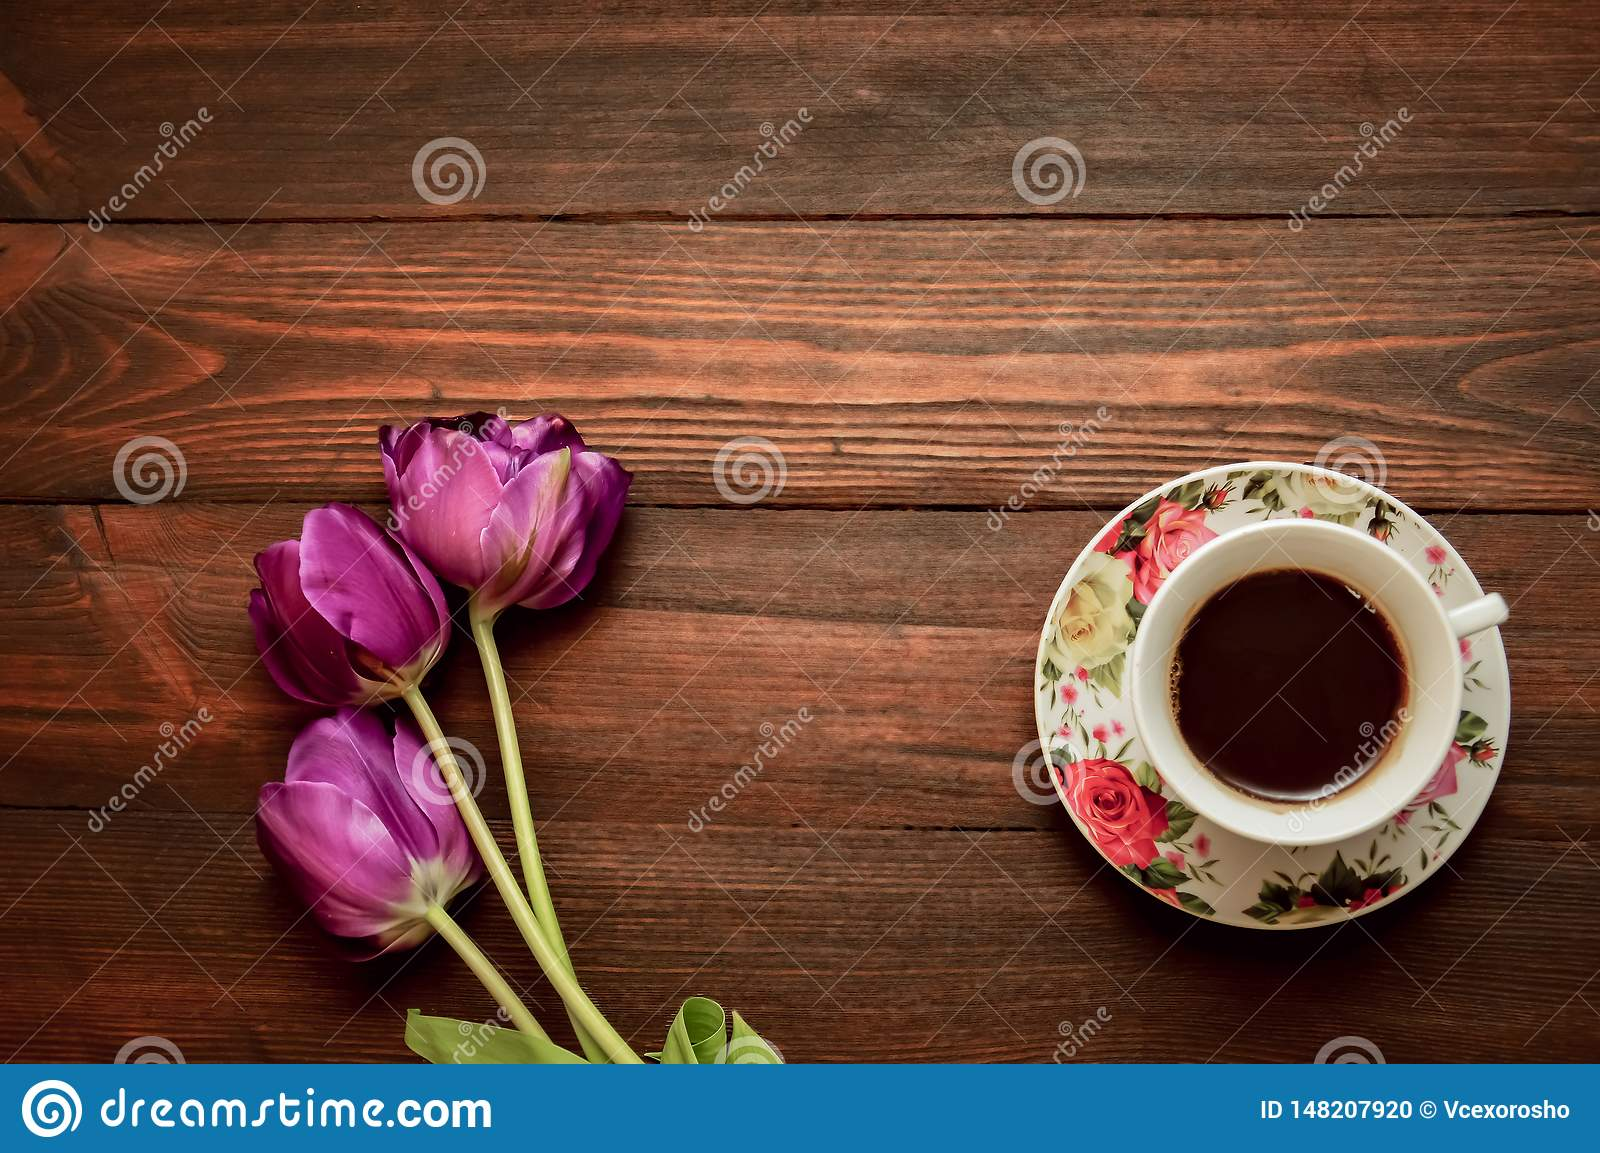 A Cup Of Coffee Or Tea On A Saucer Stands On A Wooden Background